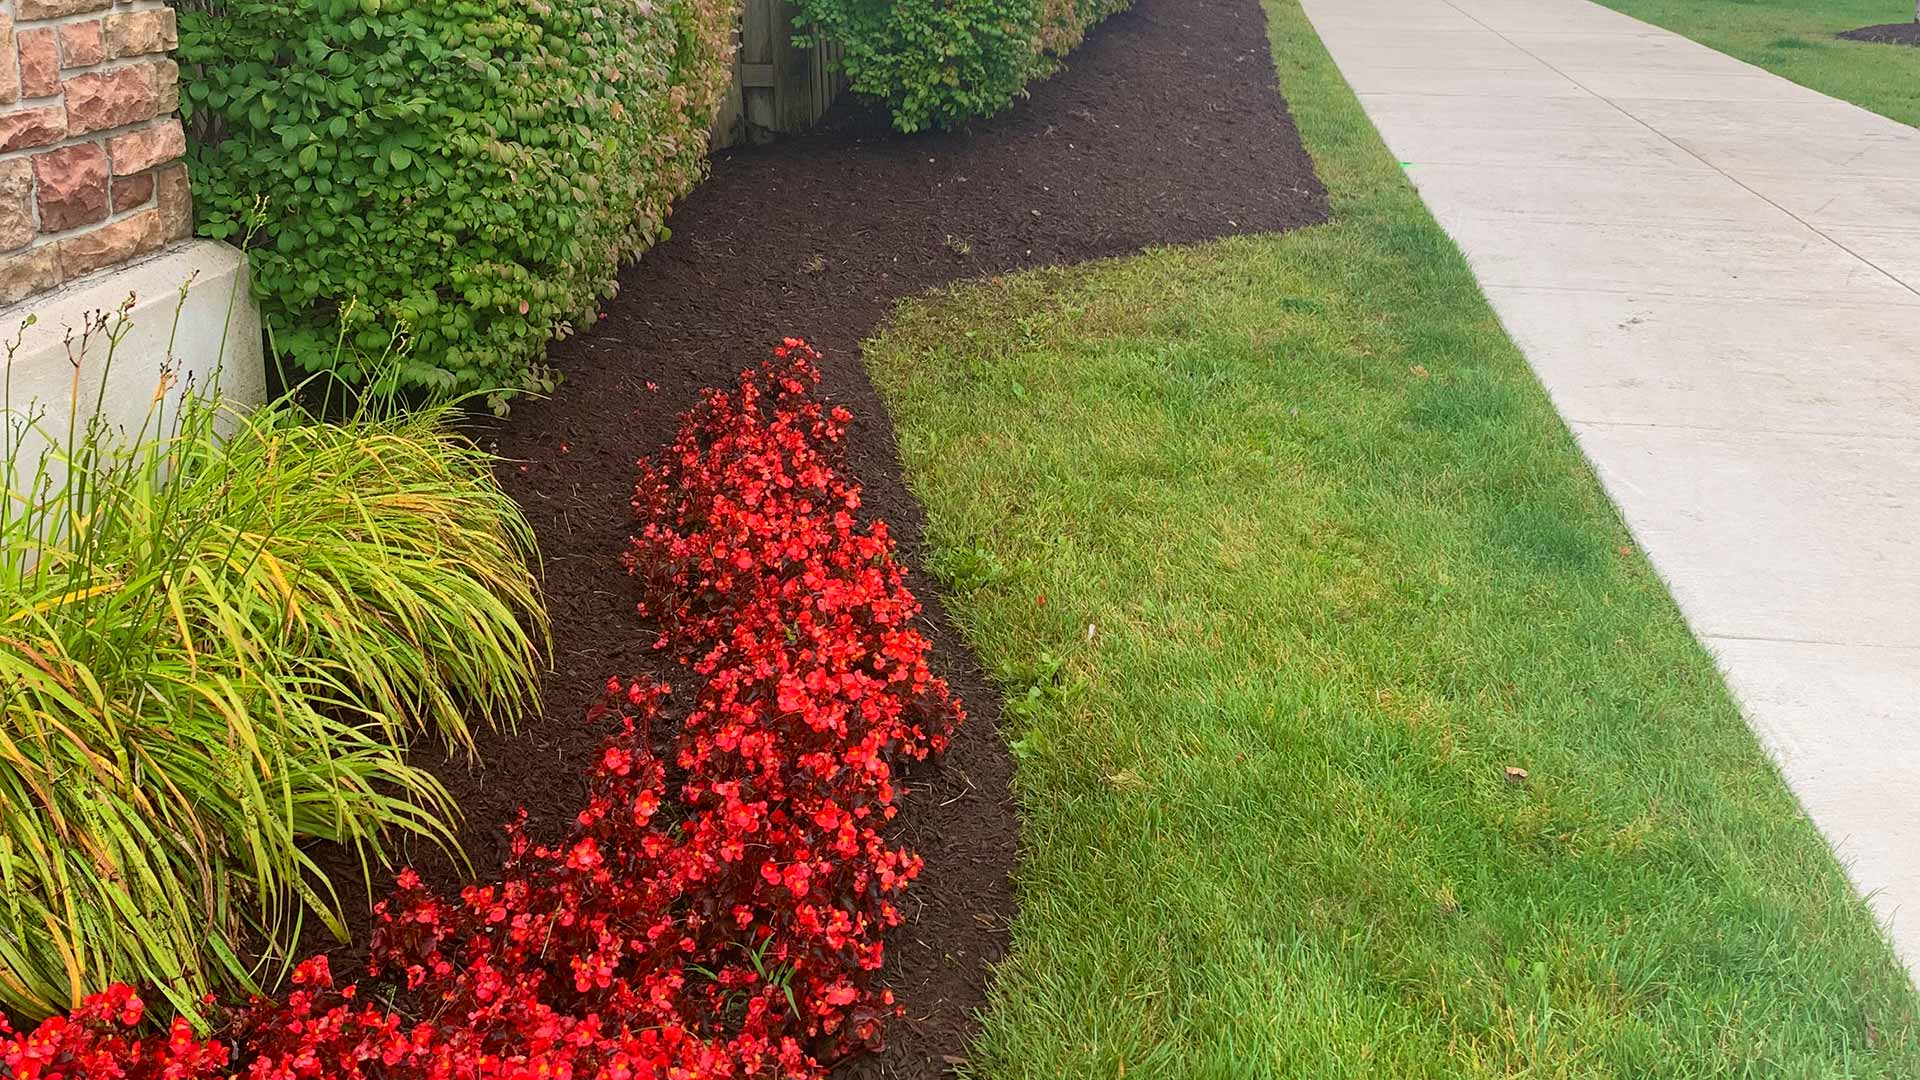 Fresh mulch installation in a commercial landscape bed near Macomb, MI.